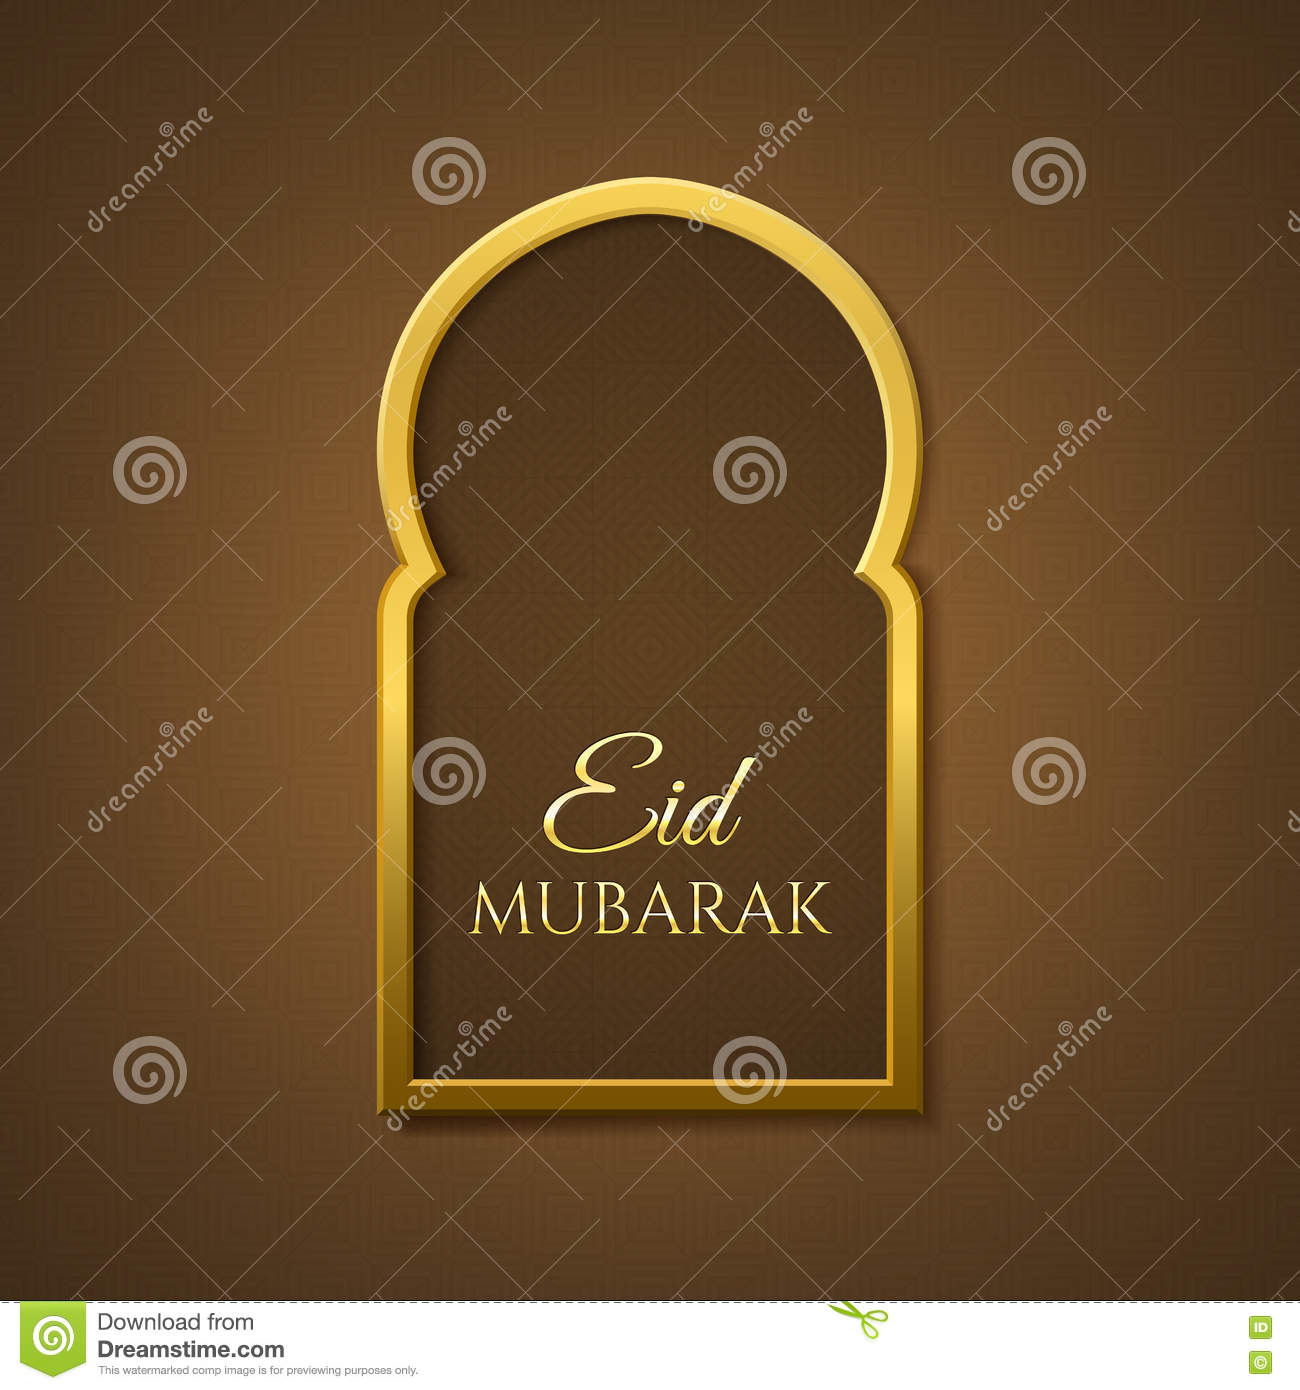 Eid mubarak background greeting card template stock vector greeting card template kristyandbryce Image collections